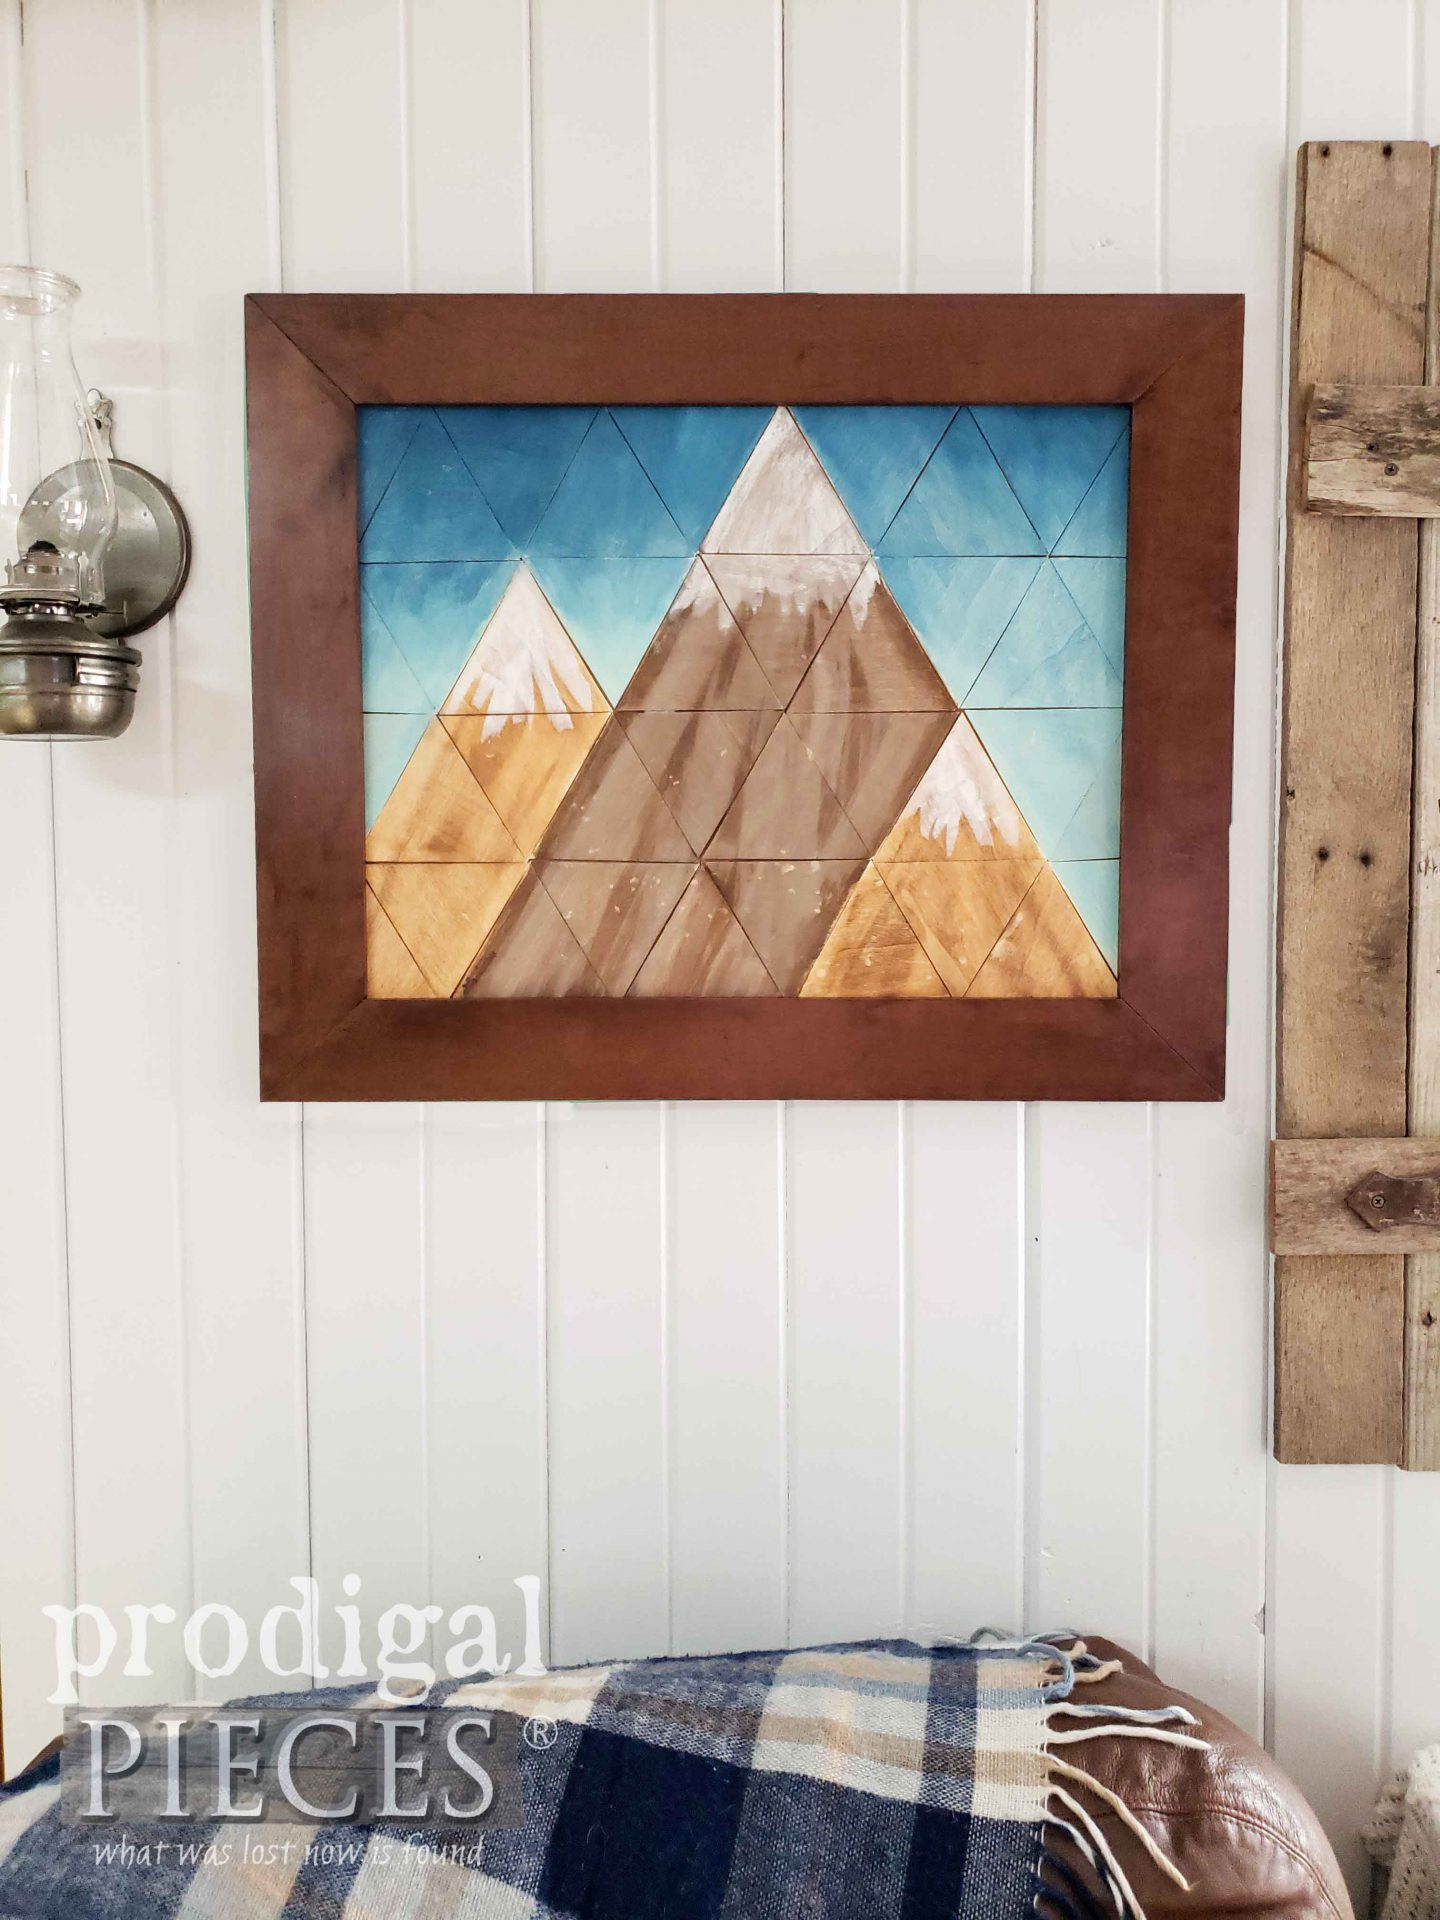 Geometric Wall Art in Mountain Form by Larissa of Prodigal Pieces | prodigalpieces.com #prodigalpieces #diy #home #homedecor #farmhouse #art